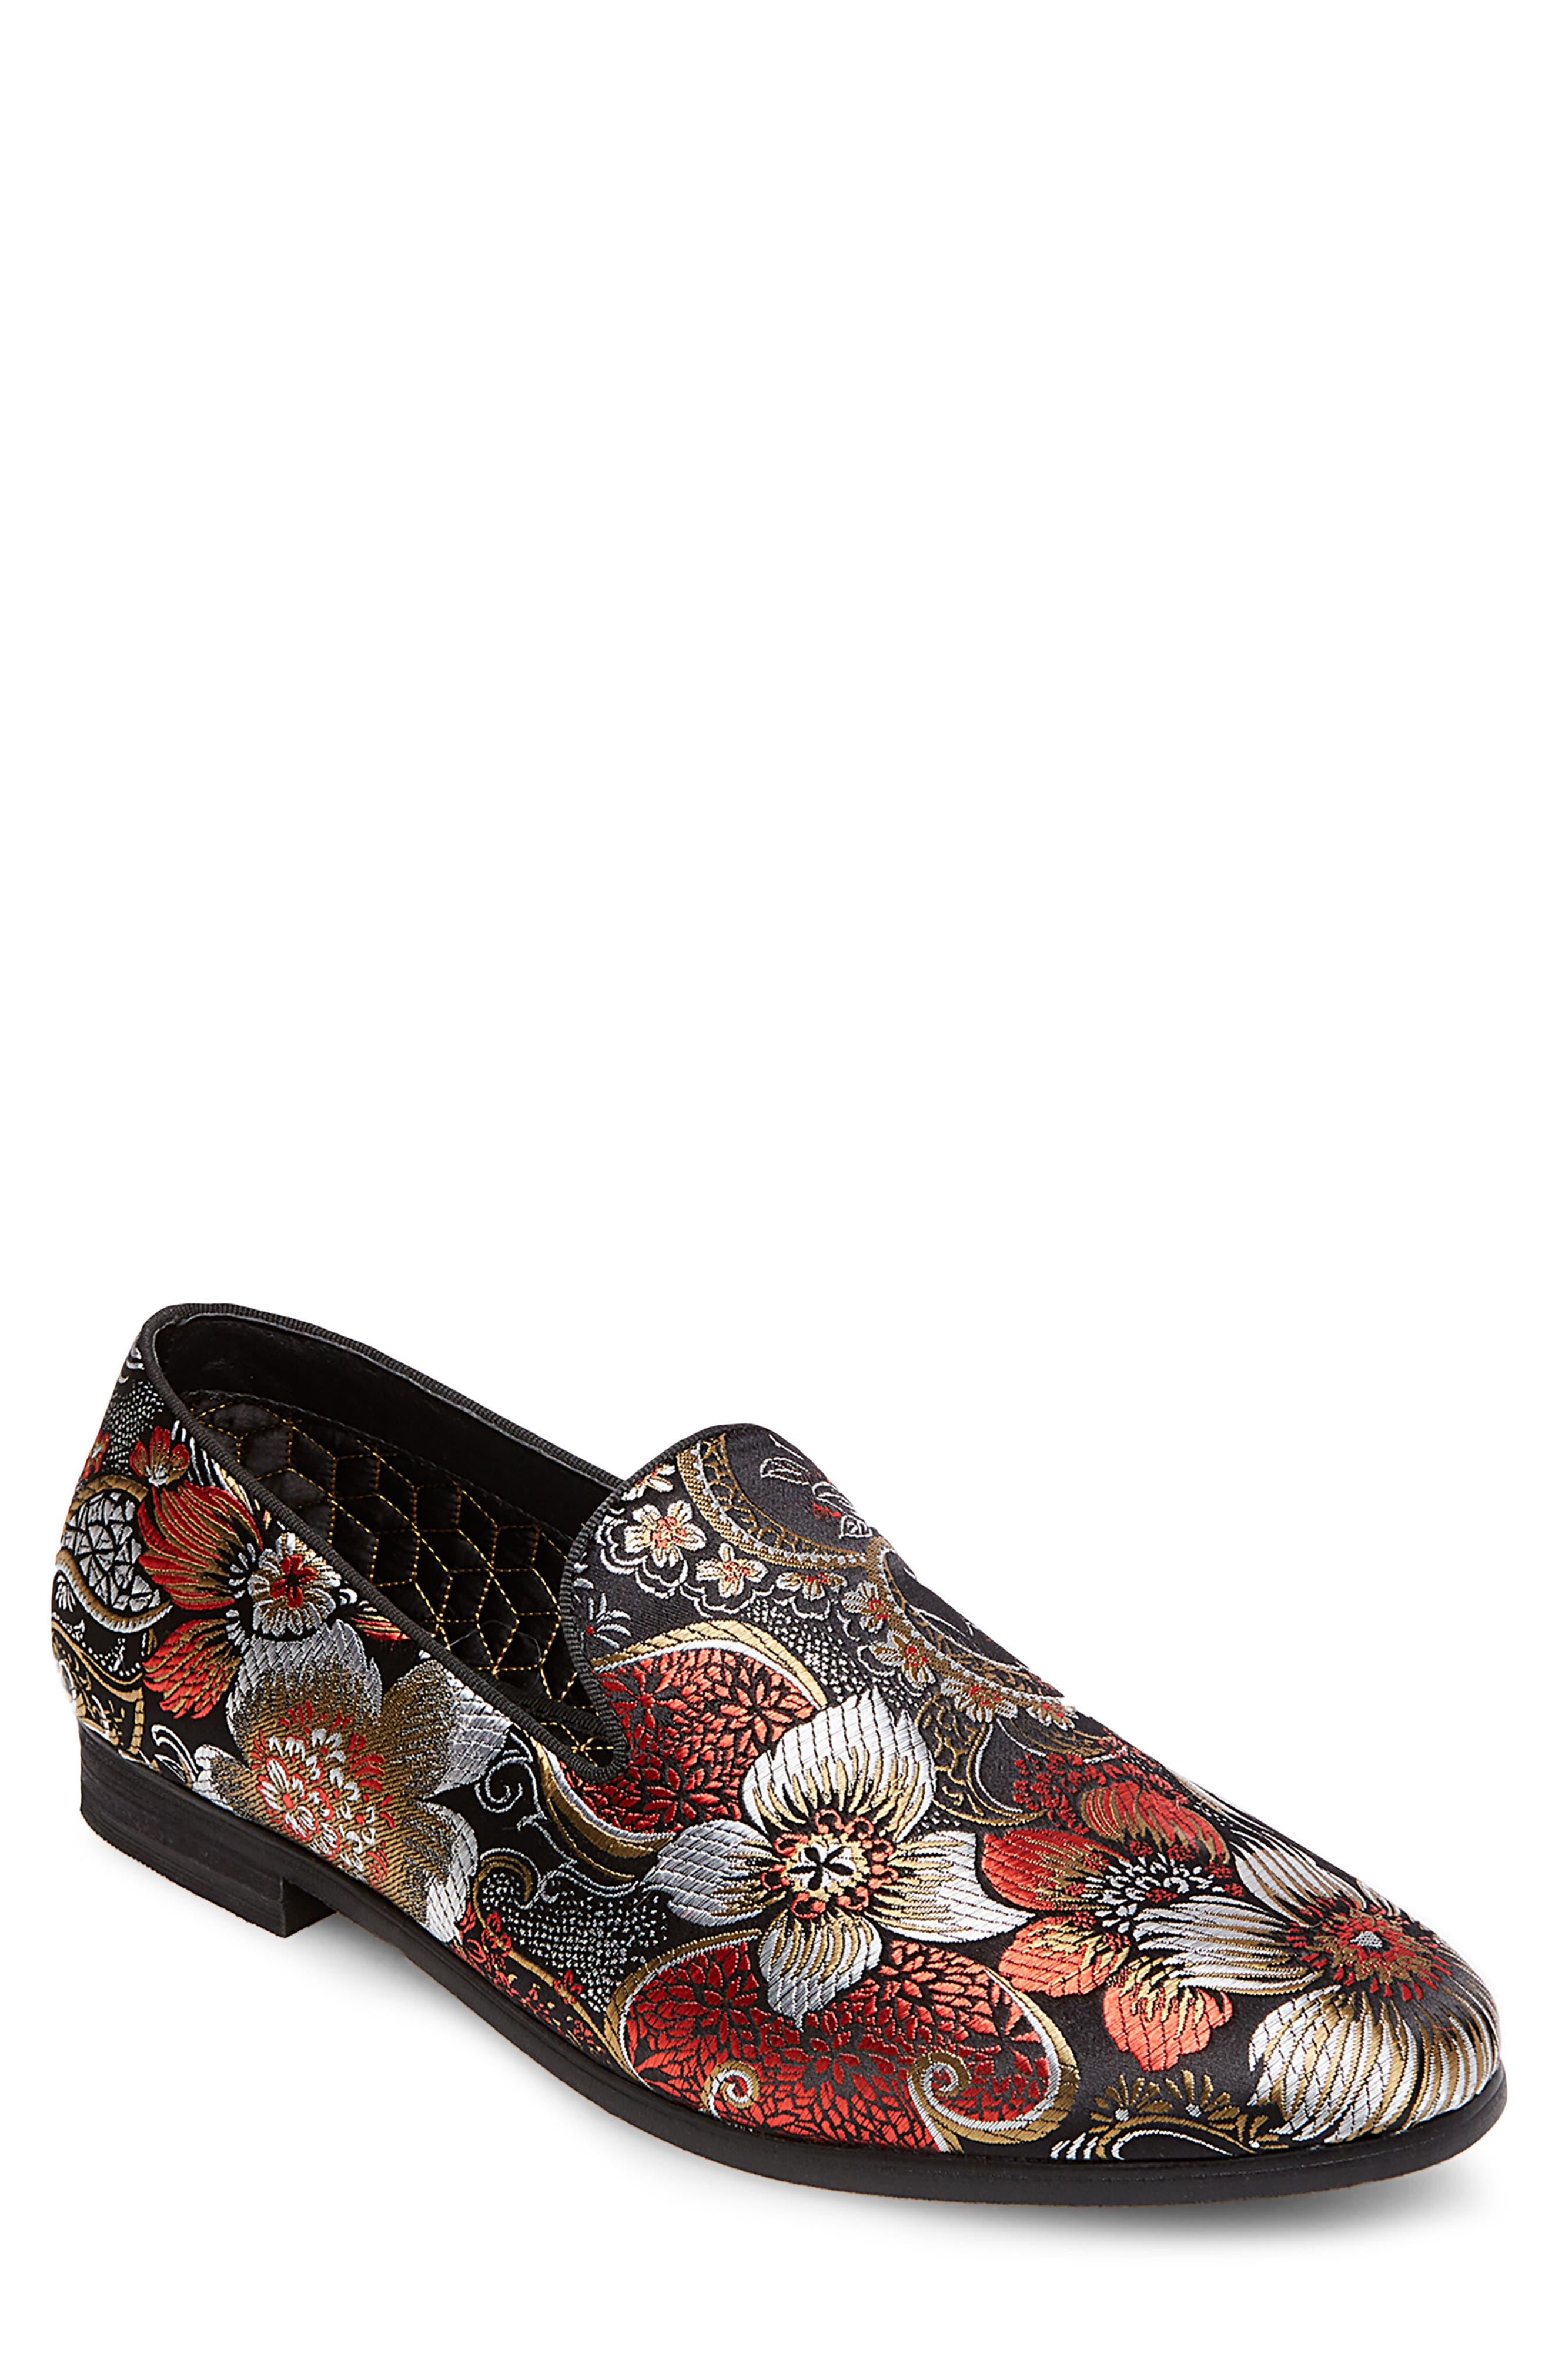 Cypress Venetian Loafer,                             Main thumbnail 1, color,                             Red Multi